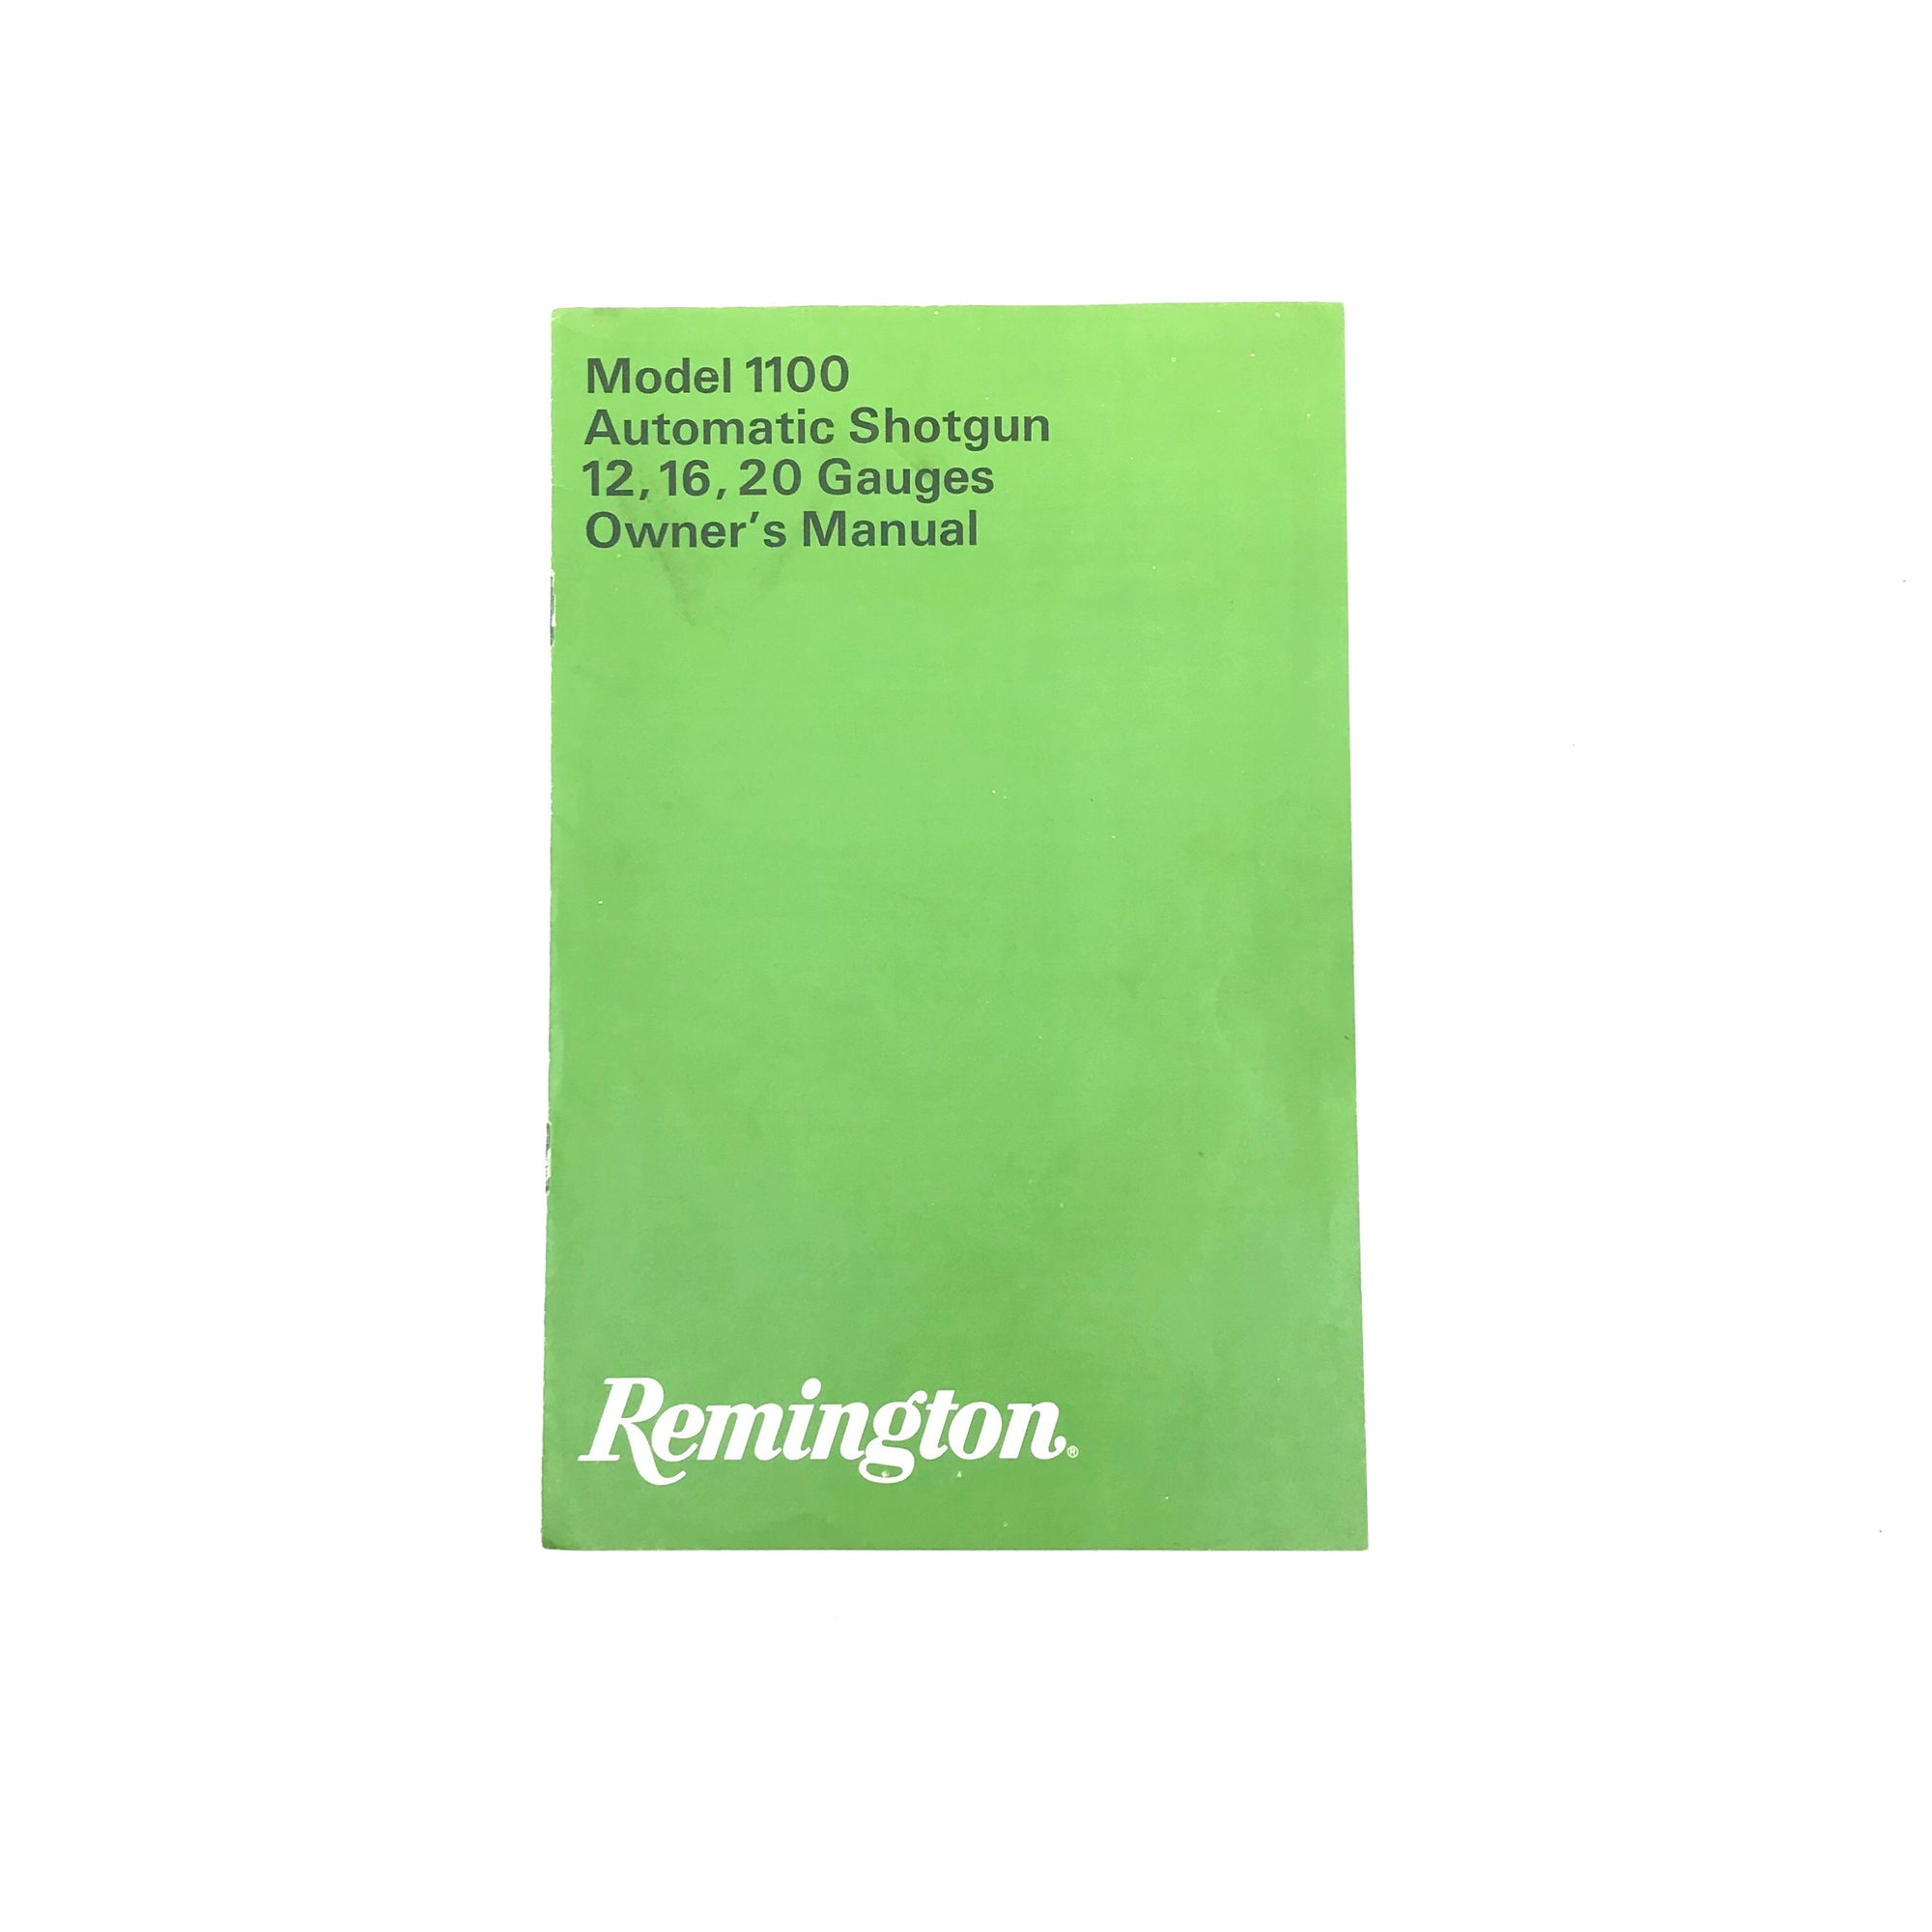 Remington Mod 1100 Auto Shotgun 12,16, 20ga Owner's Manual,Firearm Manuals- Canada Brass